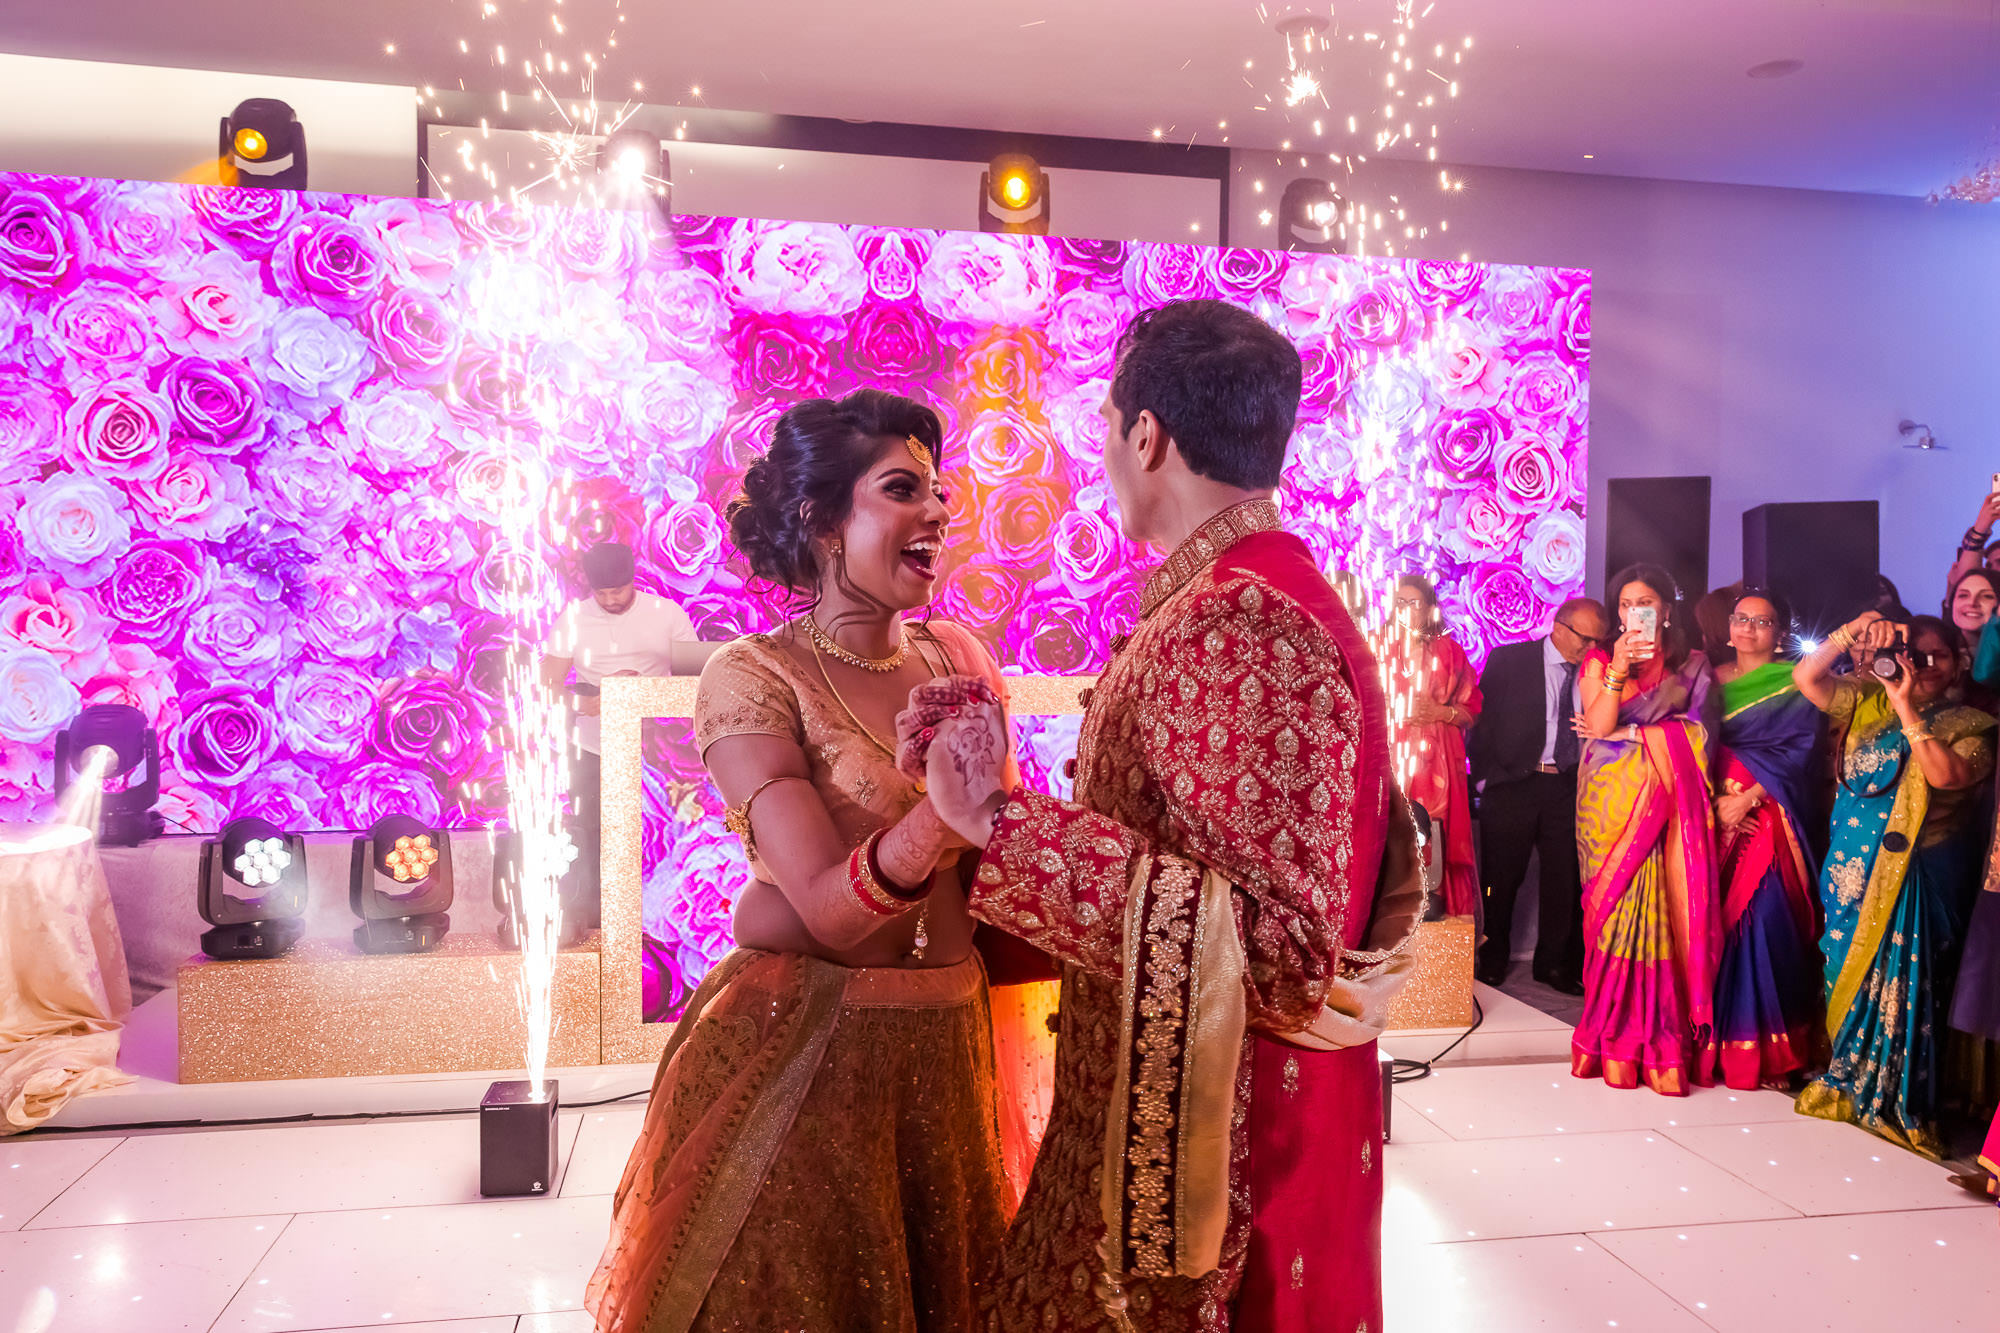 asian-wedding-hindu-tamil-photographer-heythorpe-oxford-0109.jpg